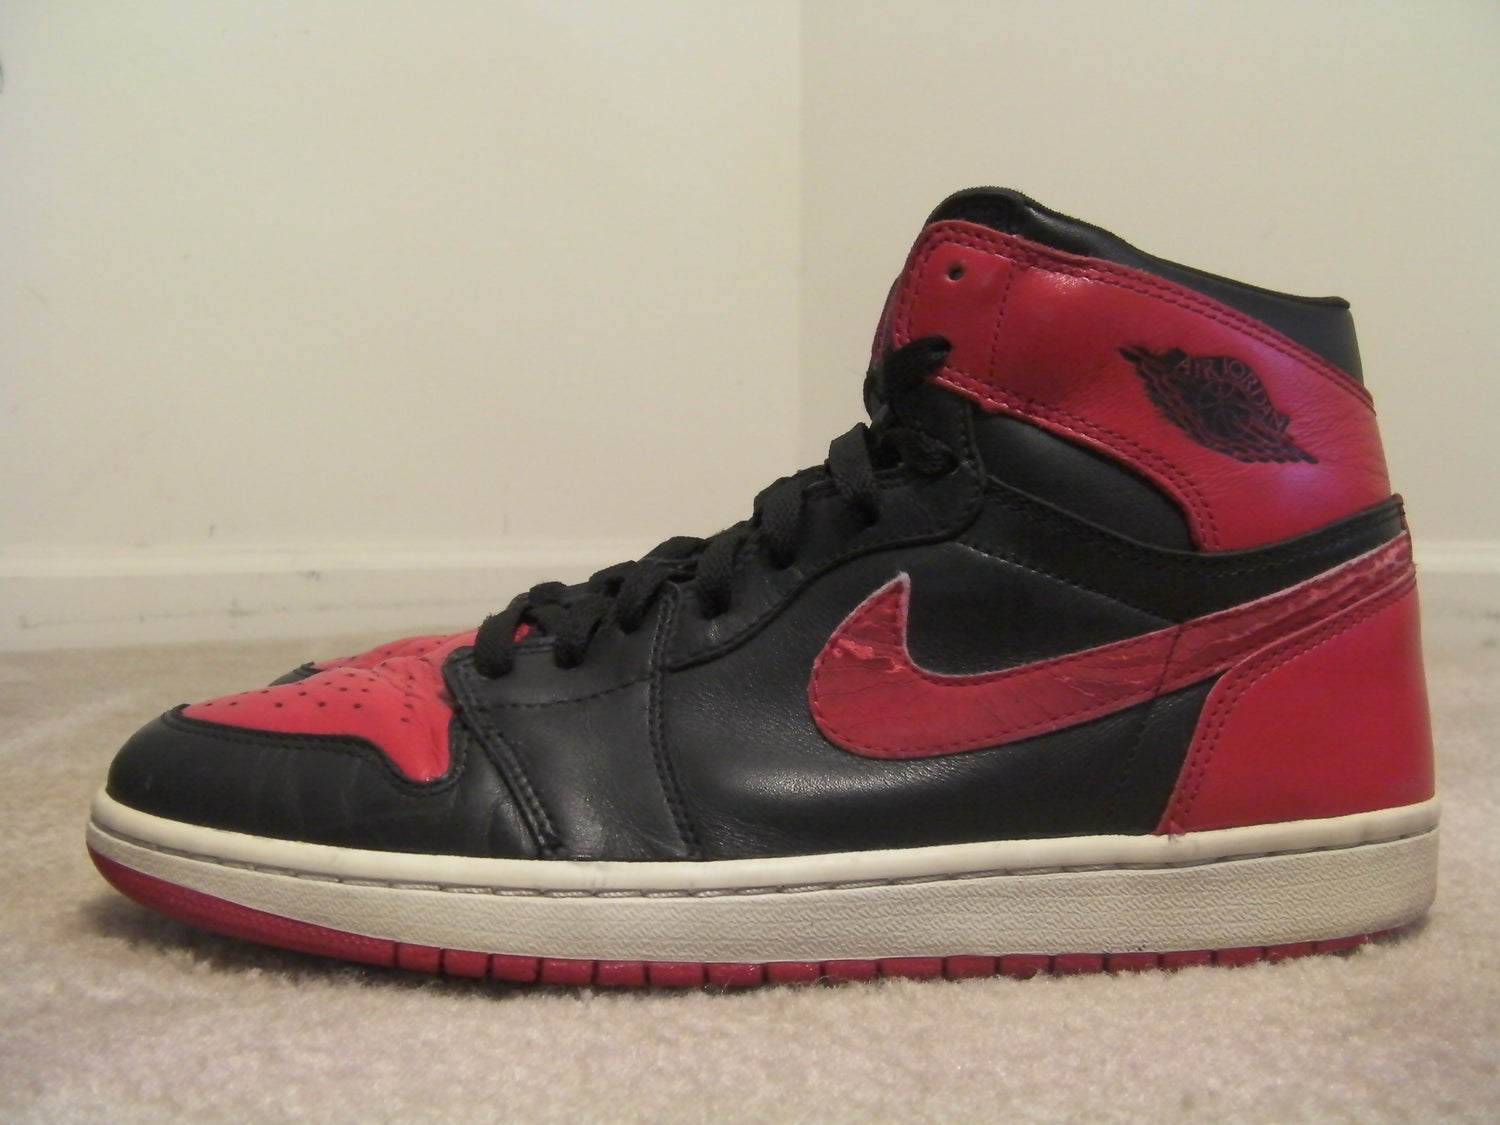 reputable site 39b3d 73251 Air Jordan 1 Bred 2001 size 10